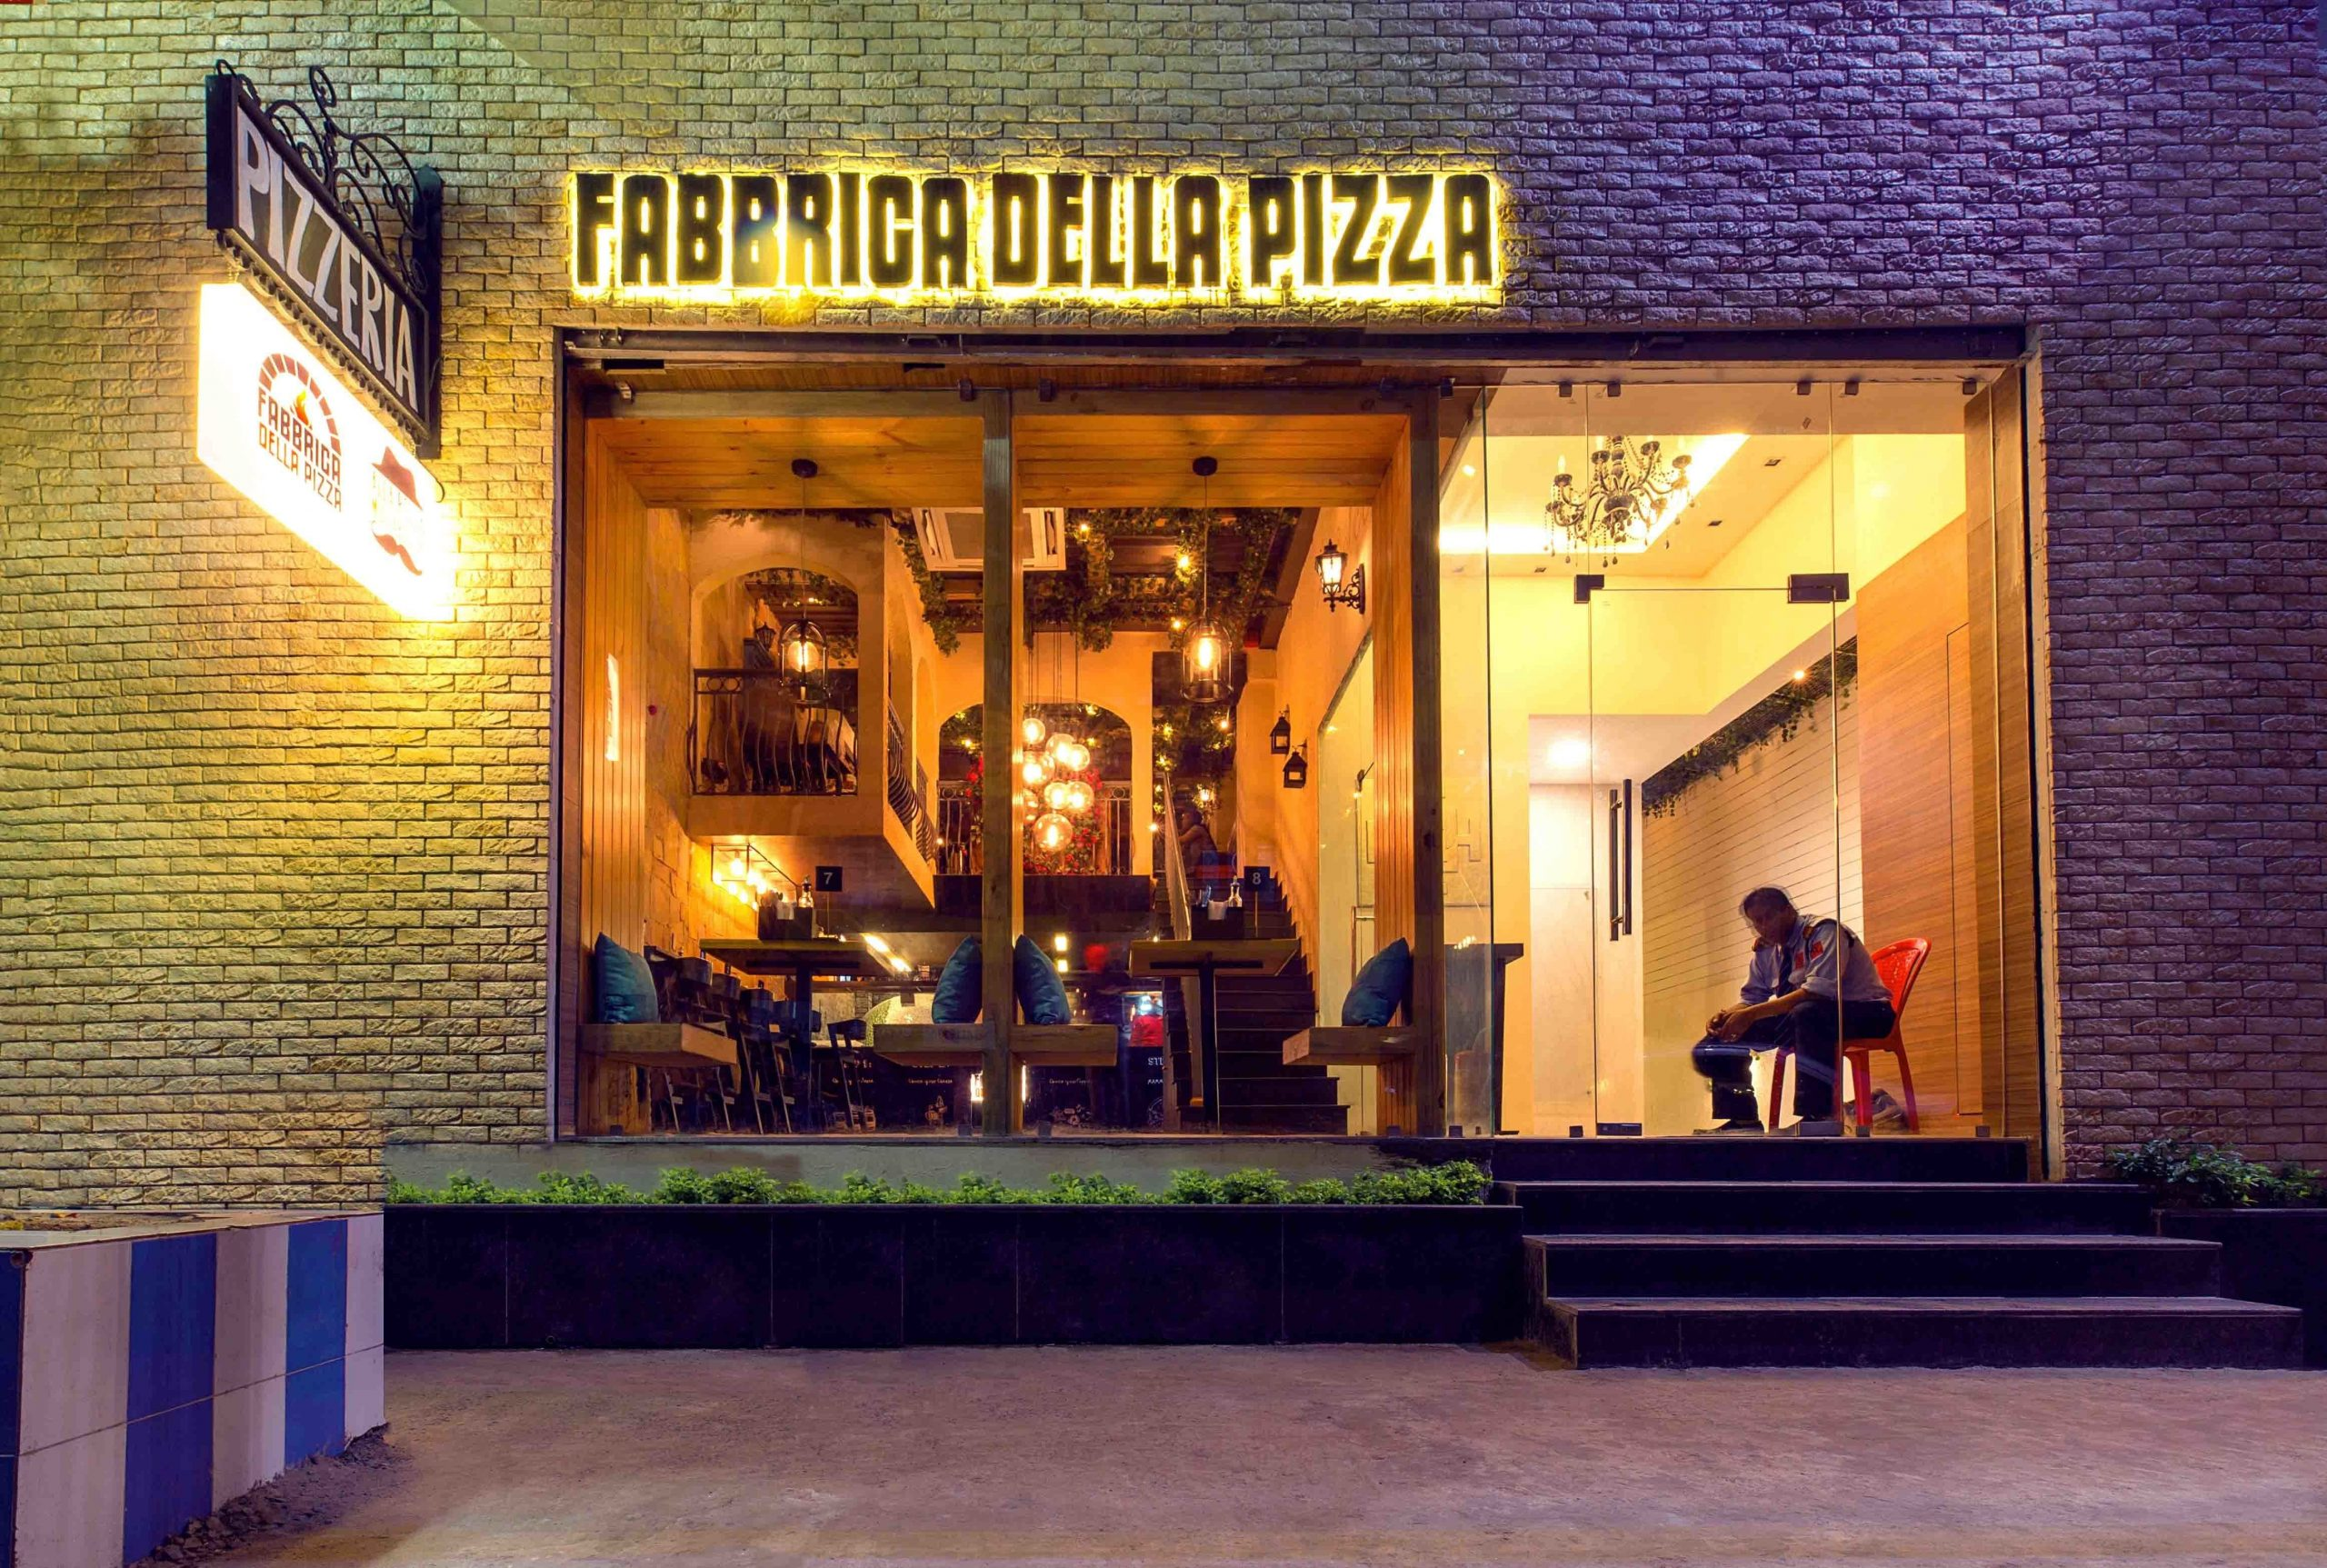 Fabbrica Della Pizza - Restaurants In Kolkata That Every Tourists Must Visit